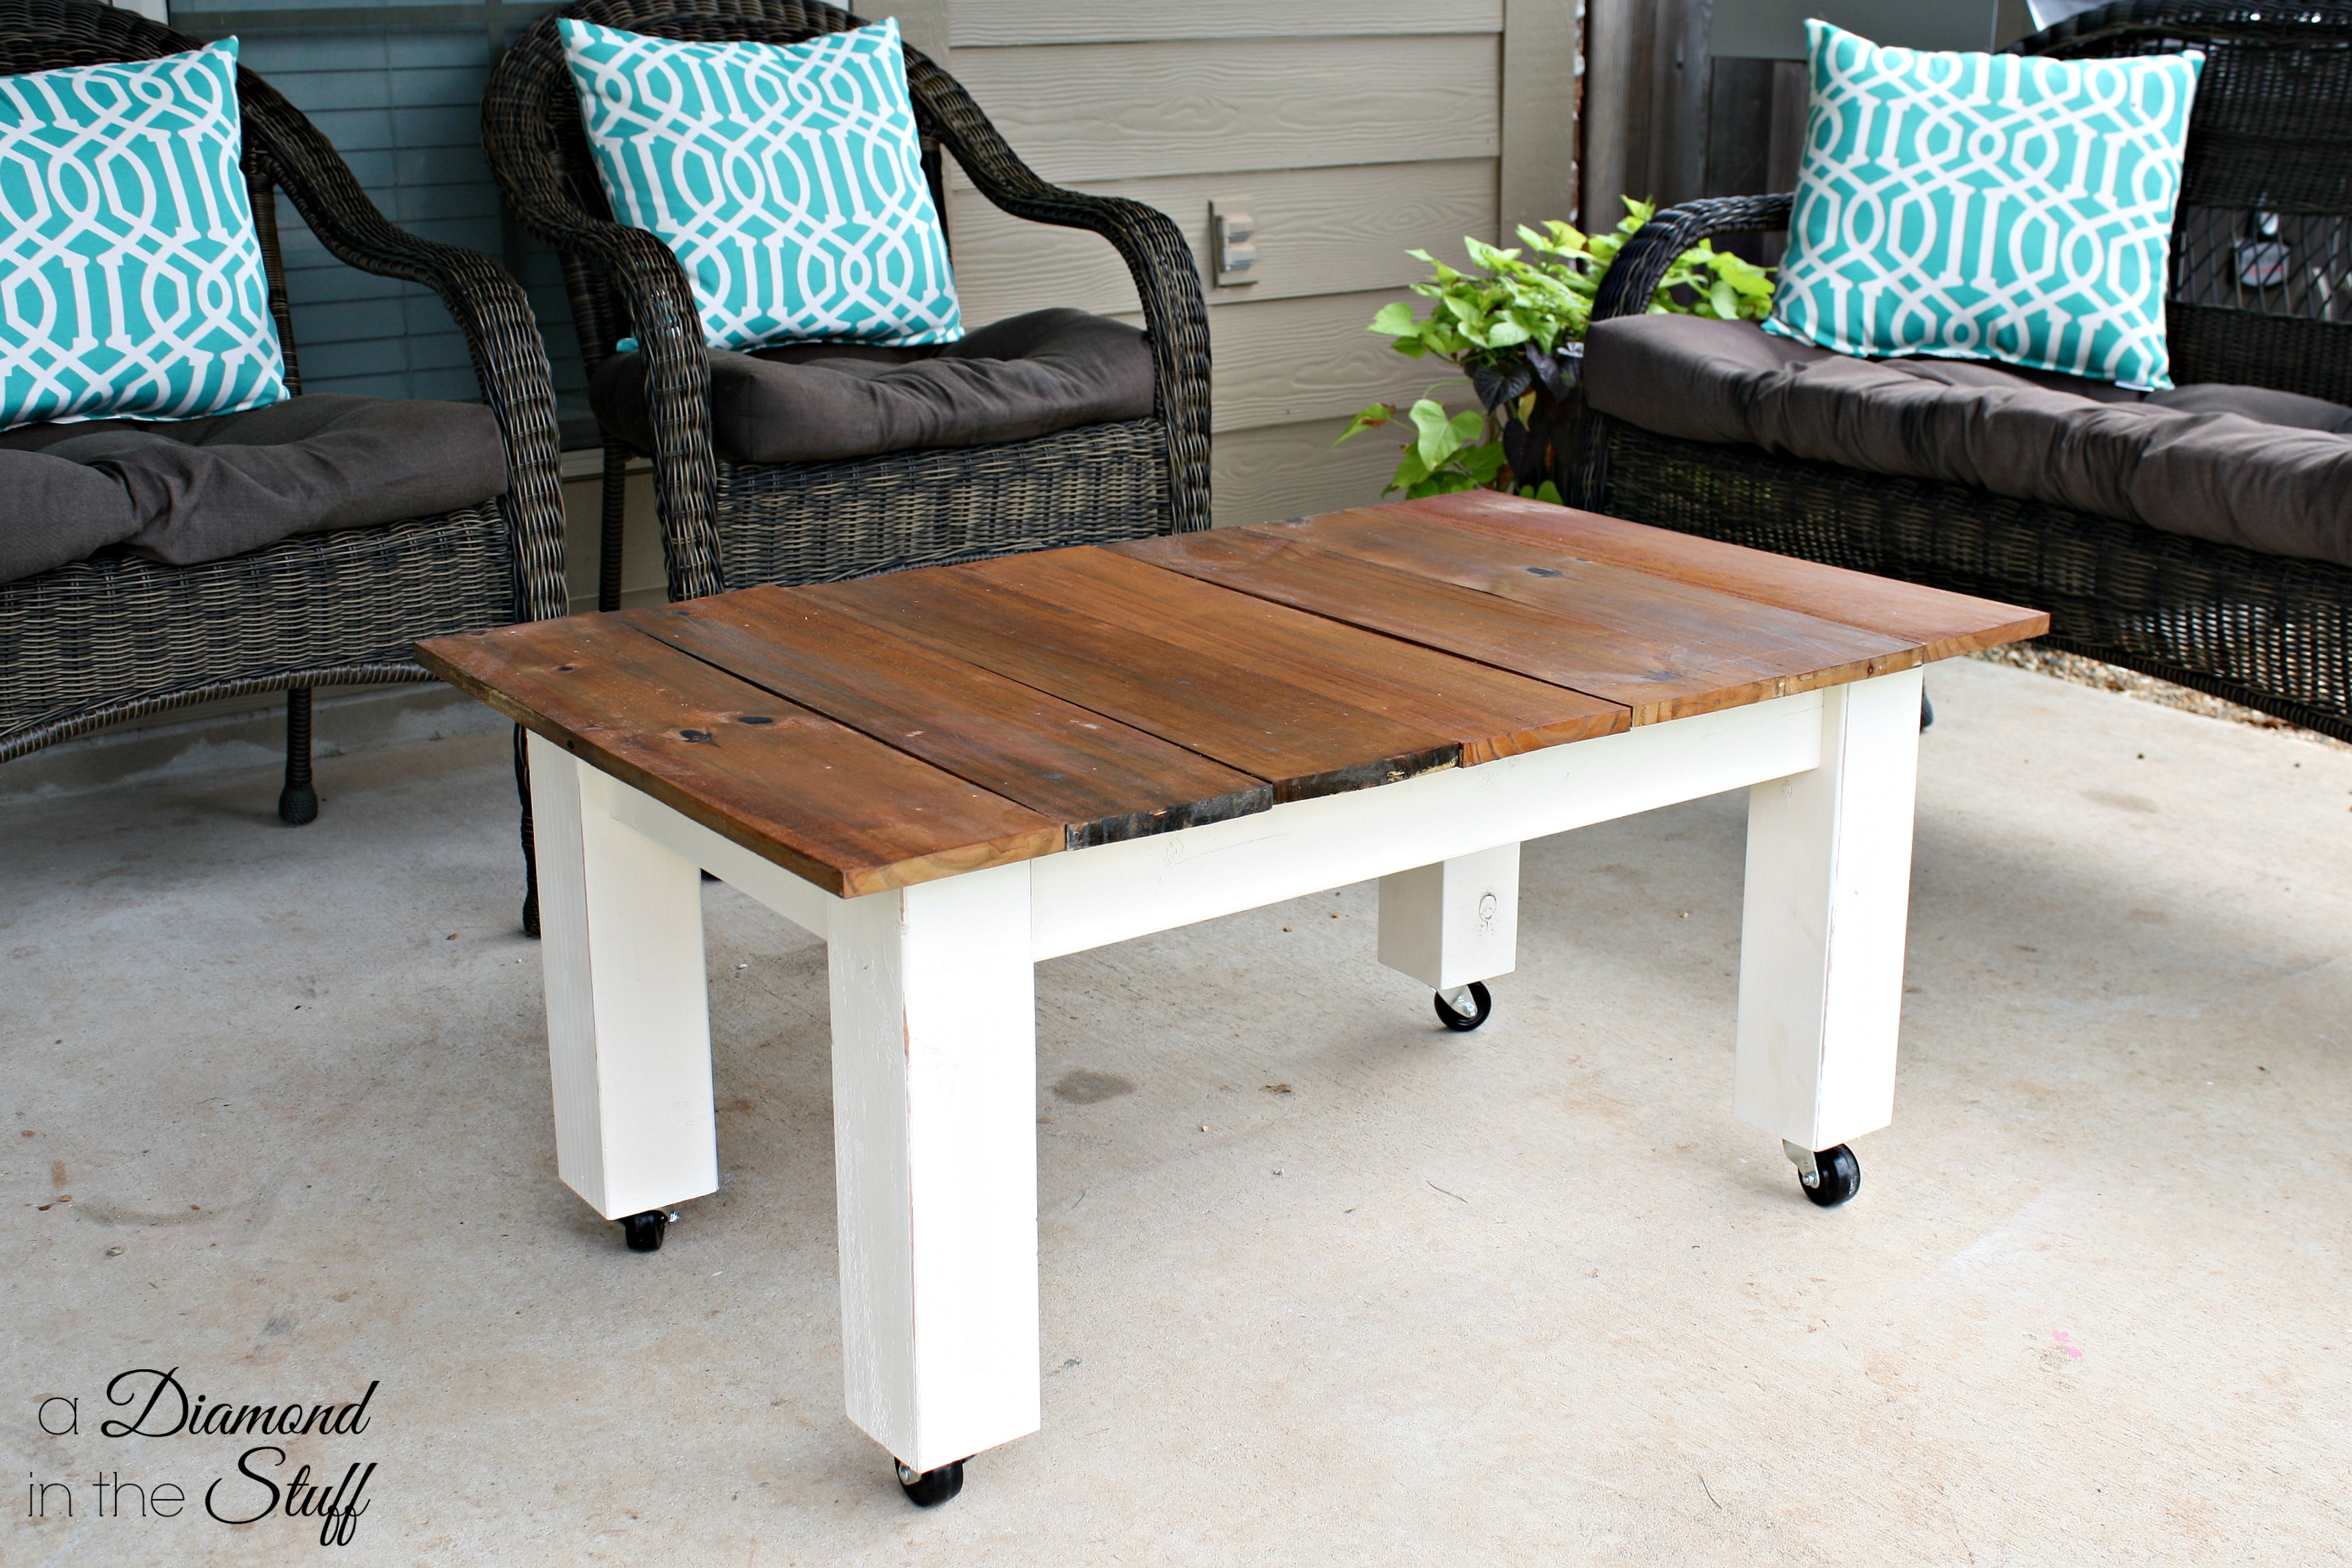 diy outdoor coffee table | a diamond in the stuff | bloglovin'